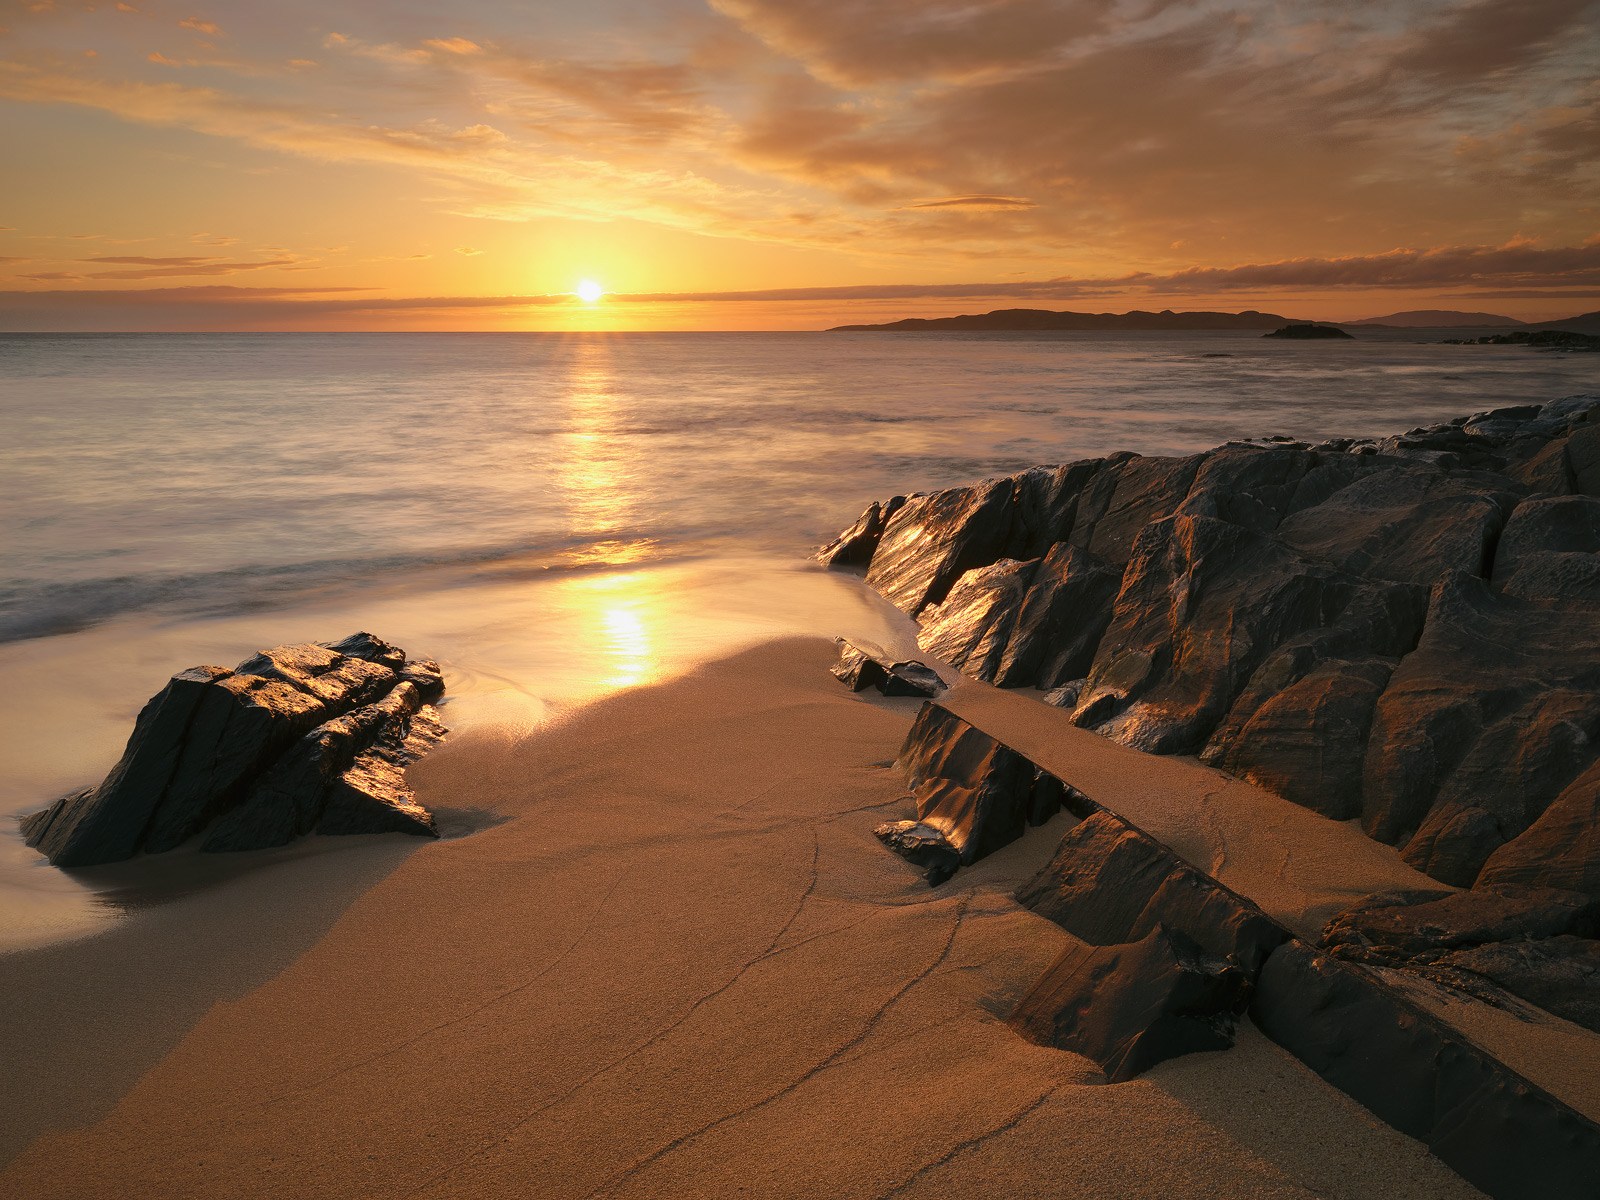 The tangerine ball of the setting sun glints off wet embedded rock and ignites the orange sand beach at Traigh Mhor on Harris.